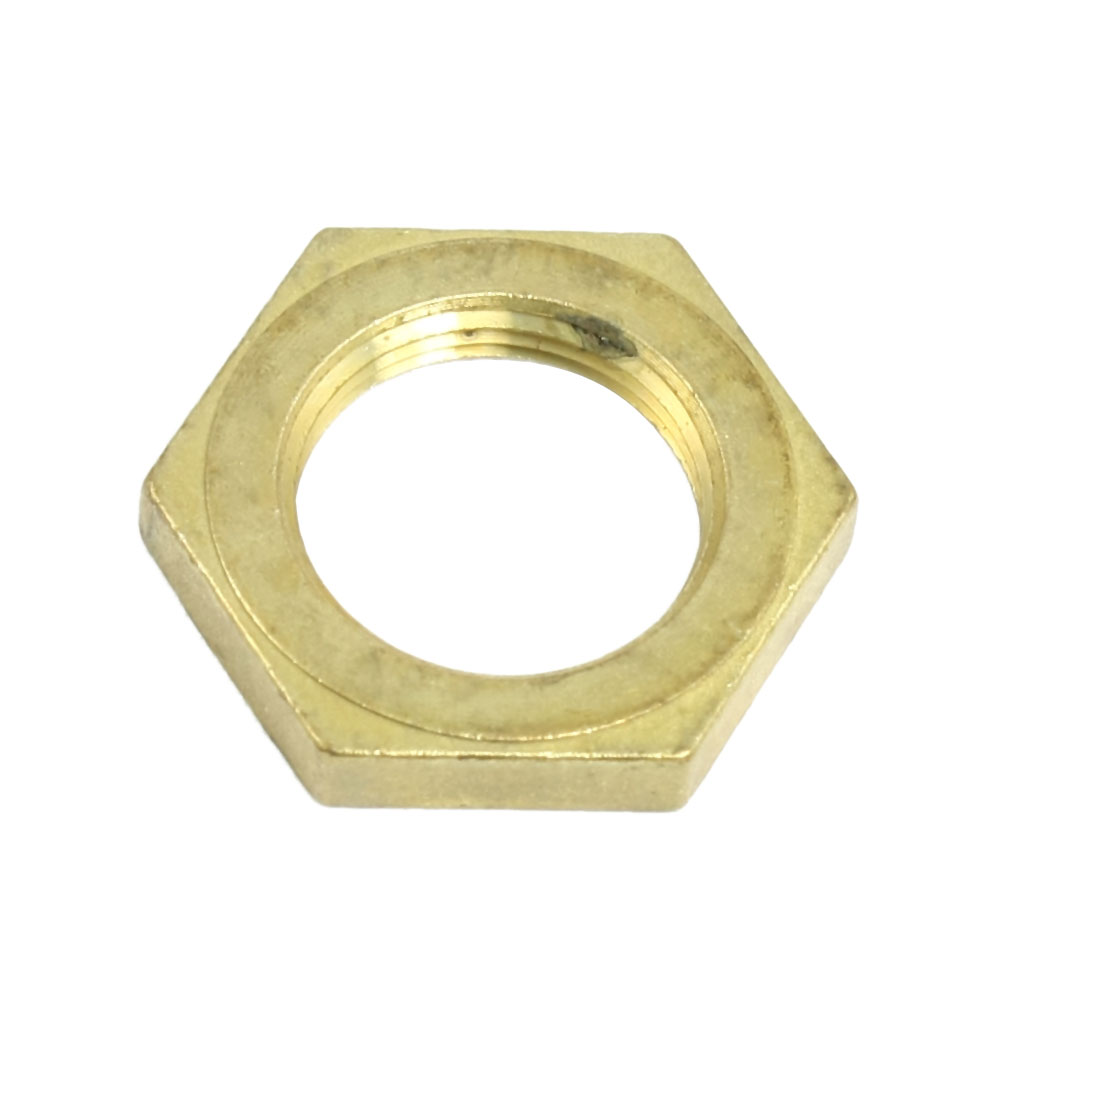 Washing-Machine-Parts-8-9-Dia-Thread-Brass-Hex-Head-Screw-Nut